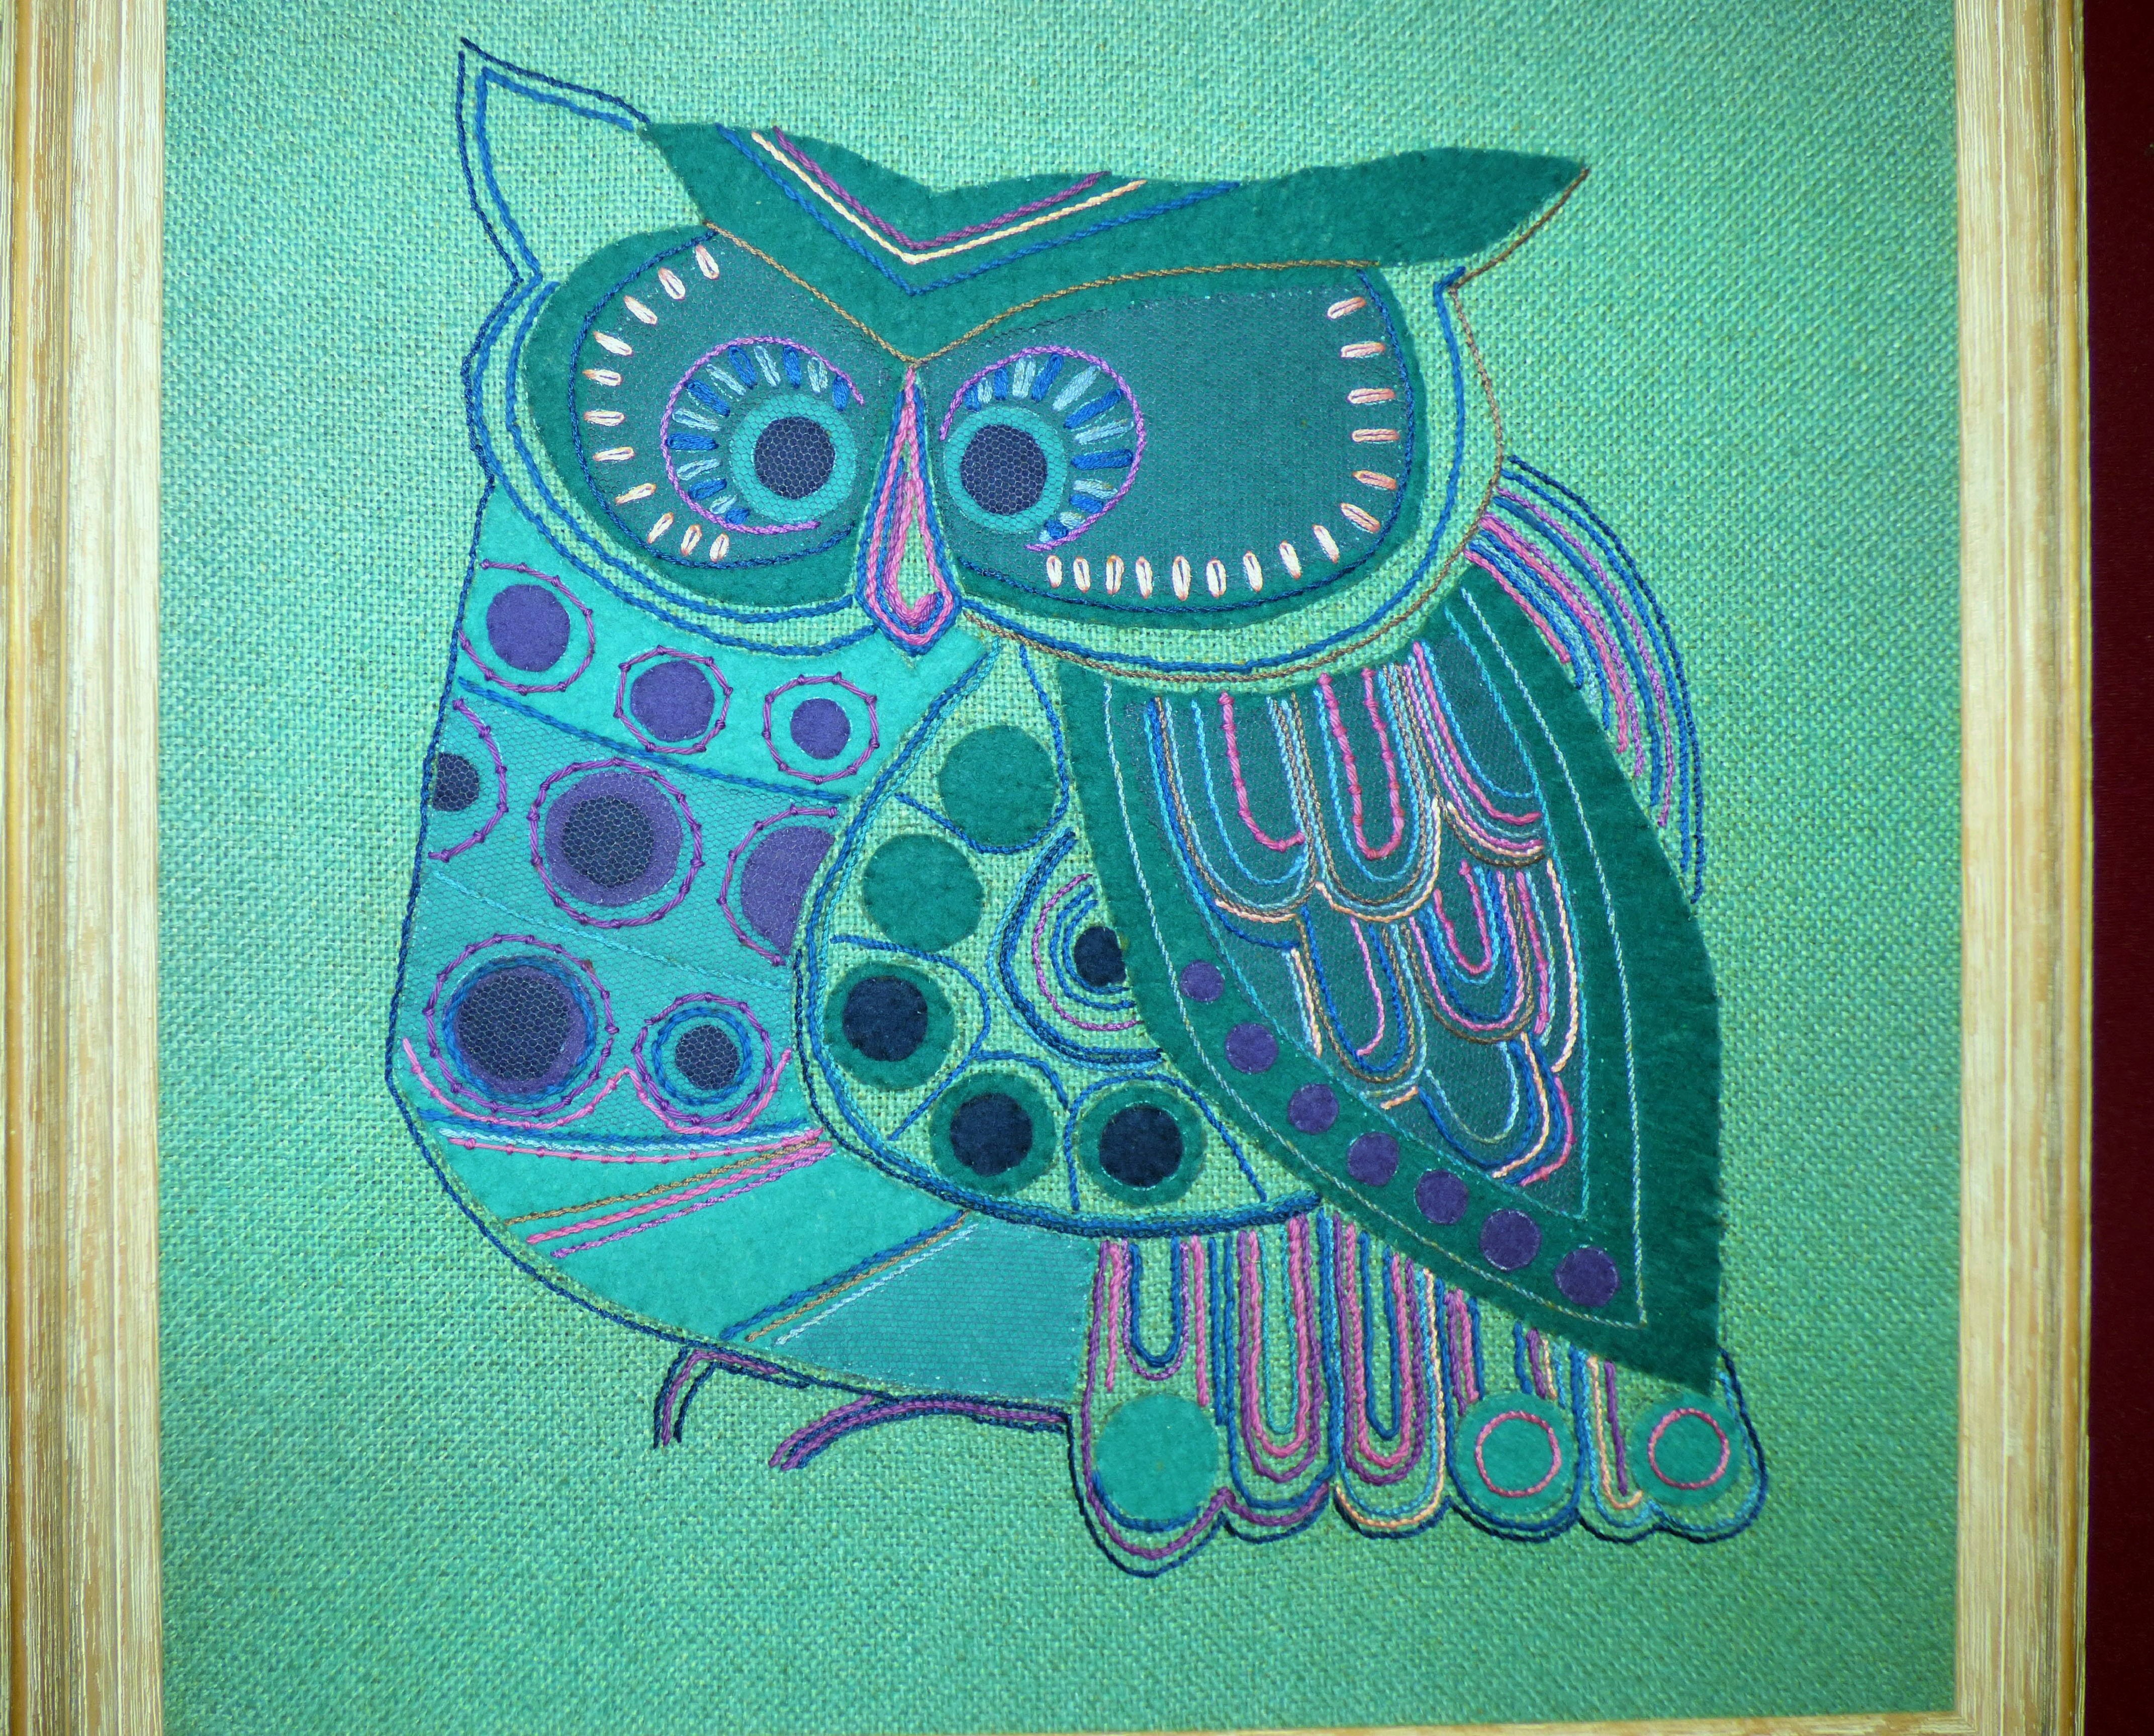 OWL(from a kit) by Margaret Gold at 60 Glorious Years exhibition 2016